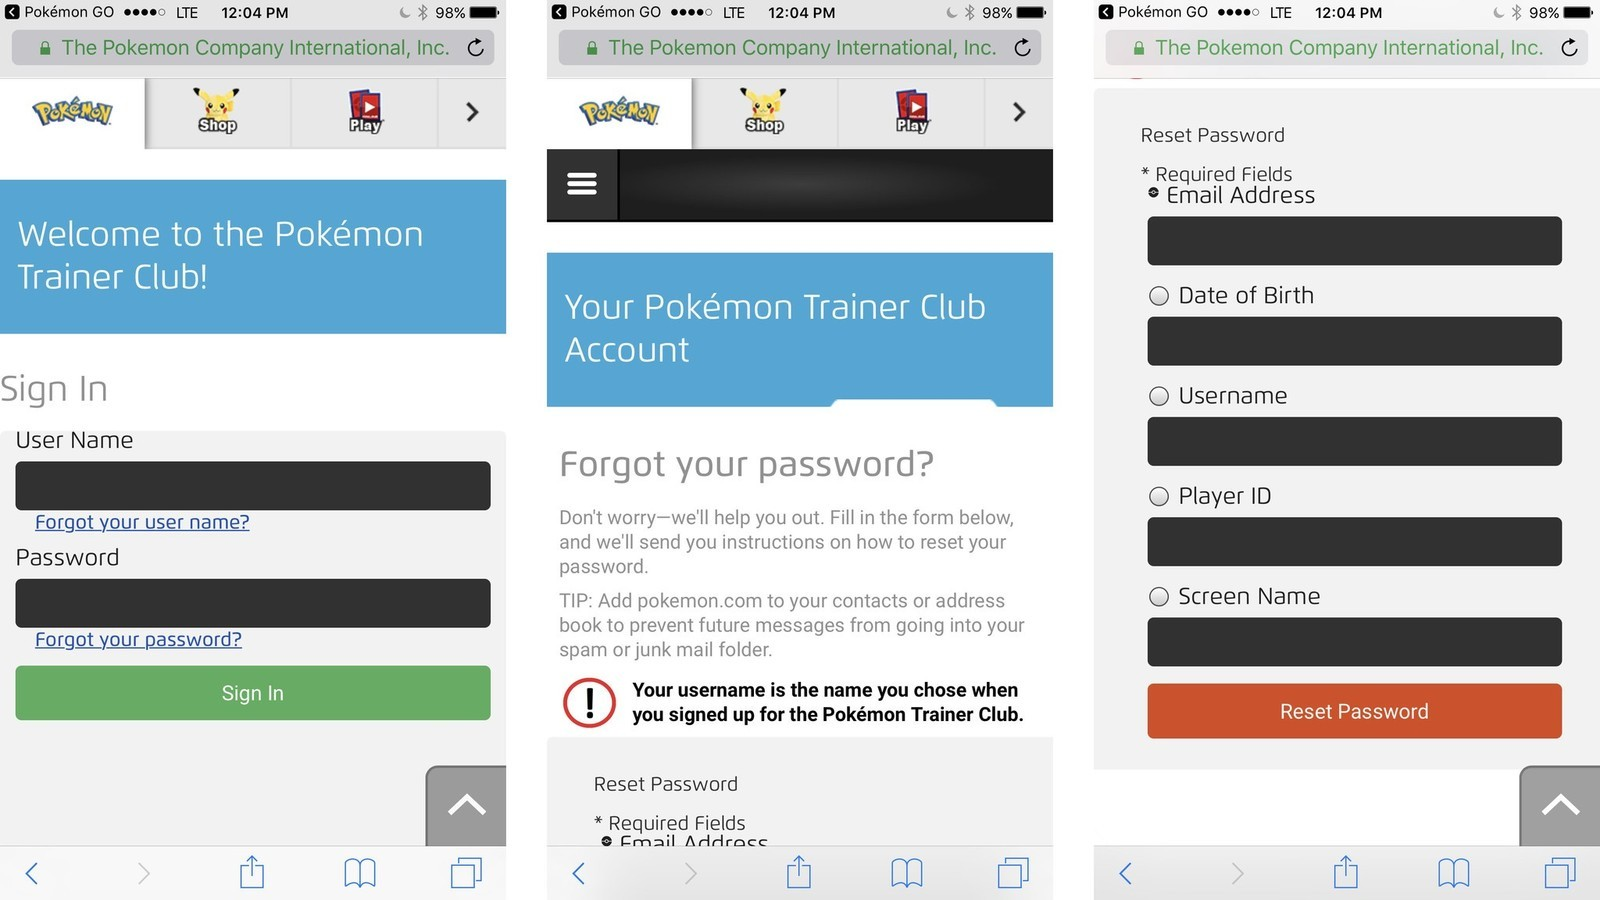 Pokémon Go shadow bans: What they are and how to avoid and appeal